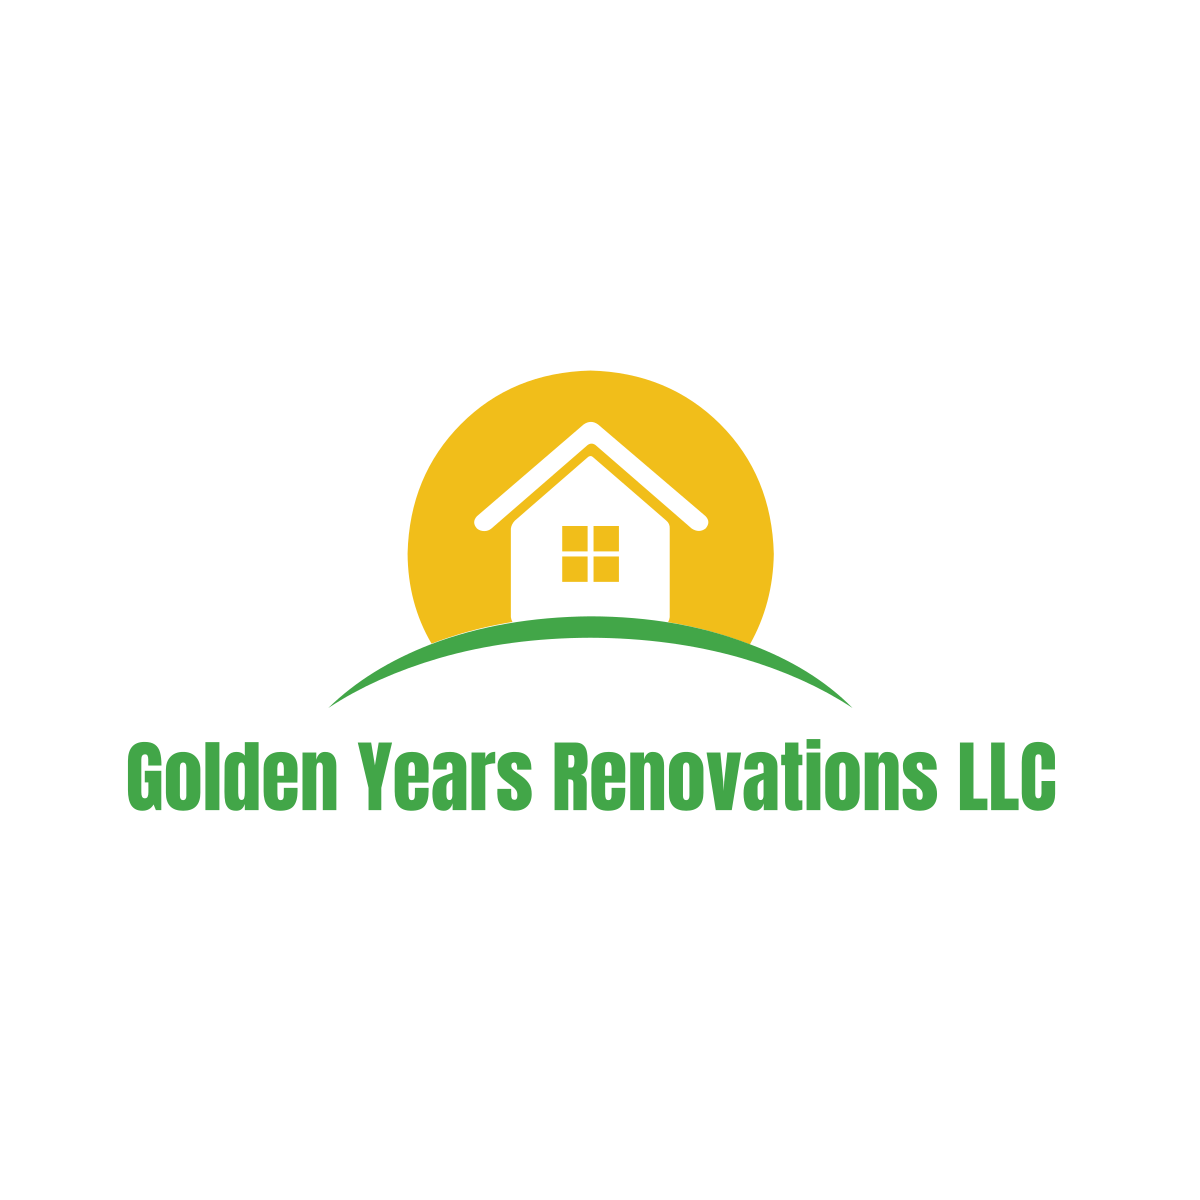 Golden Years Renovations LLC image